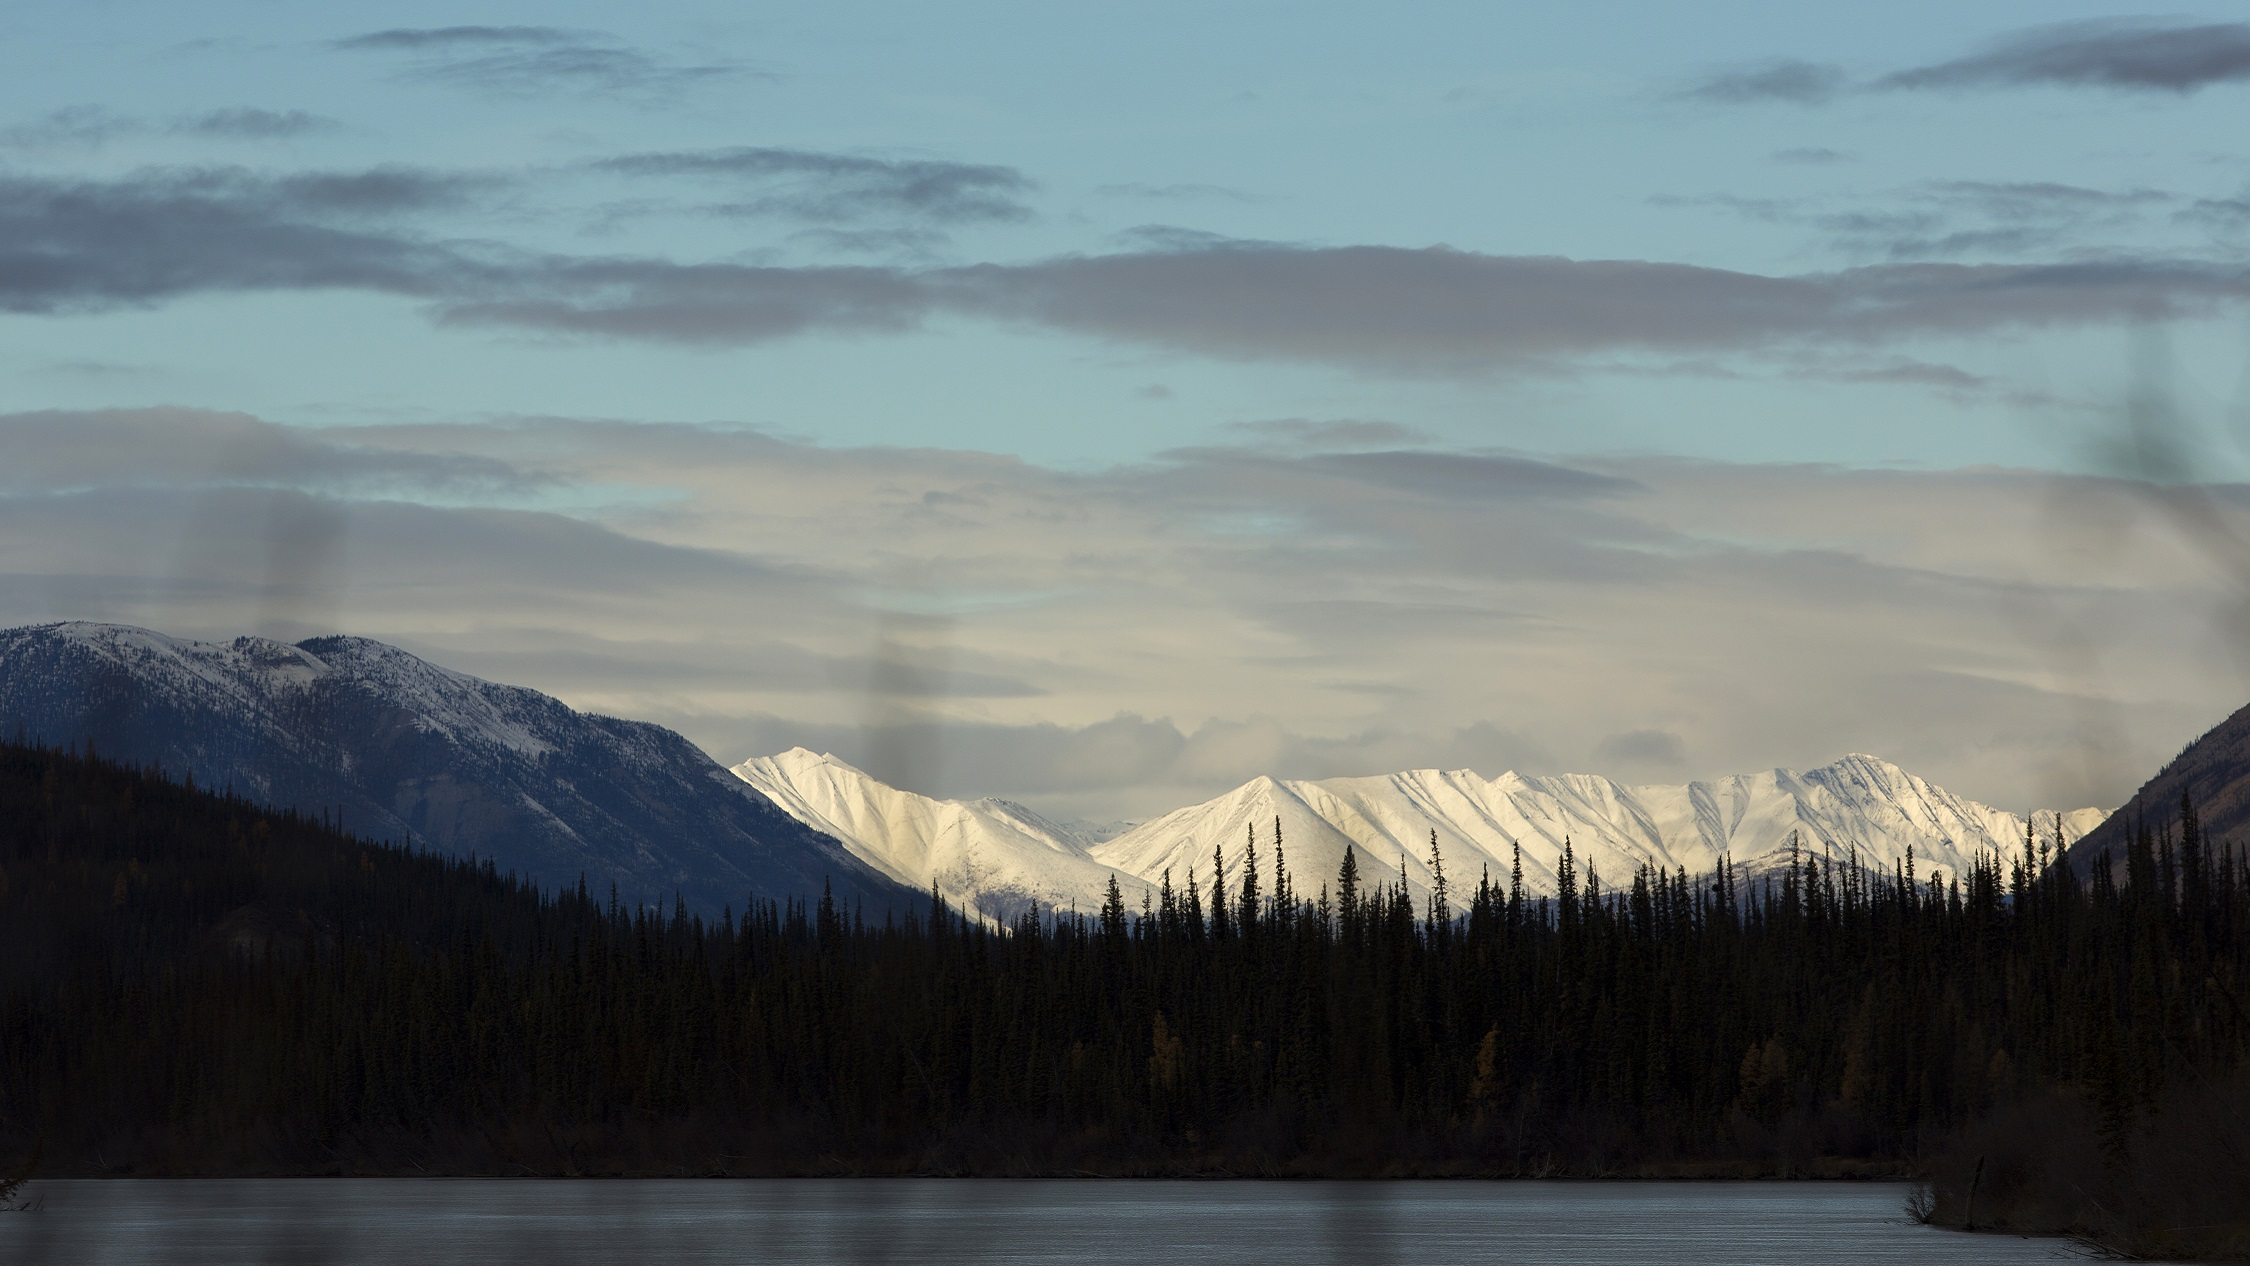 The Mackenzie Mountains loom above trees lining the 335-mile-long South Nahanni River